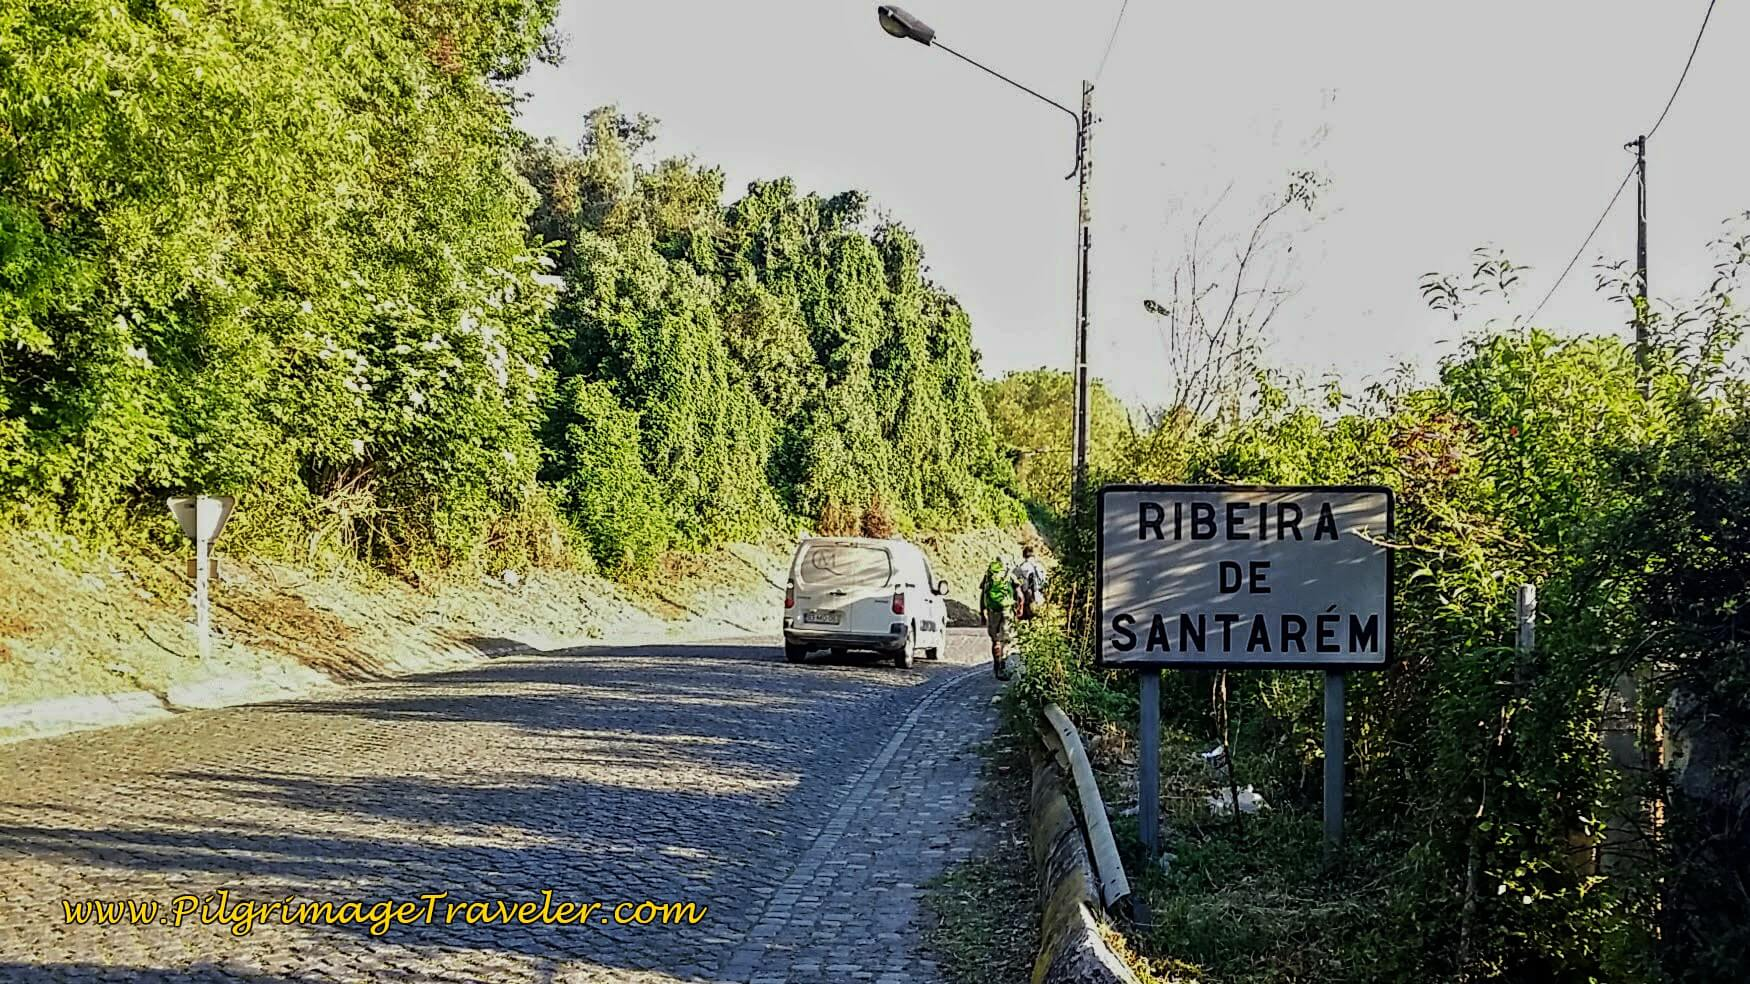 Walking the N365 into Ribeira de Santarém on the Portuguese Way.